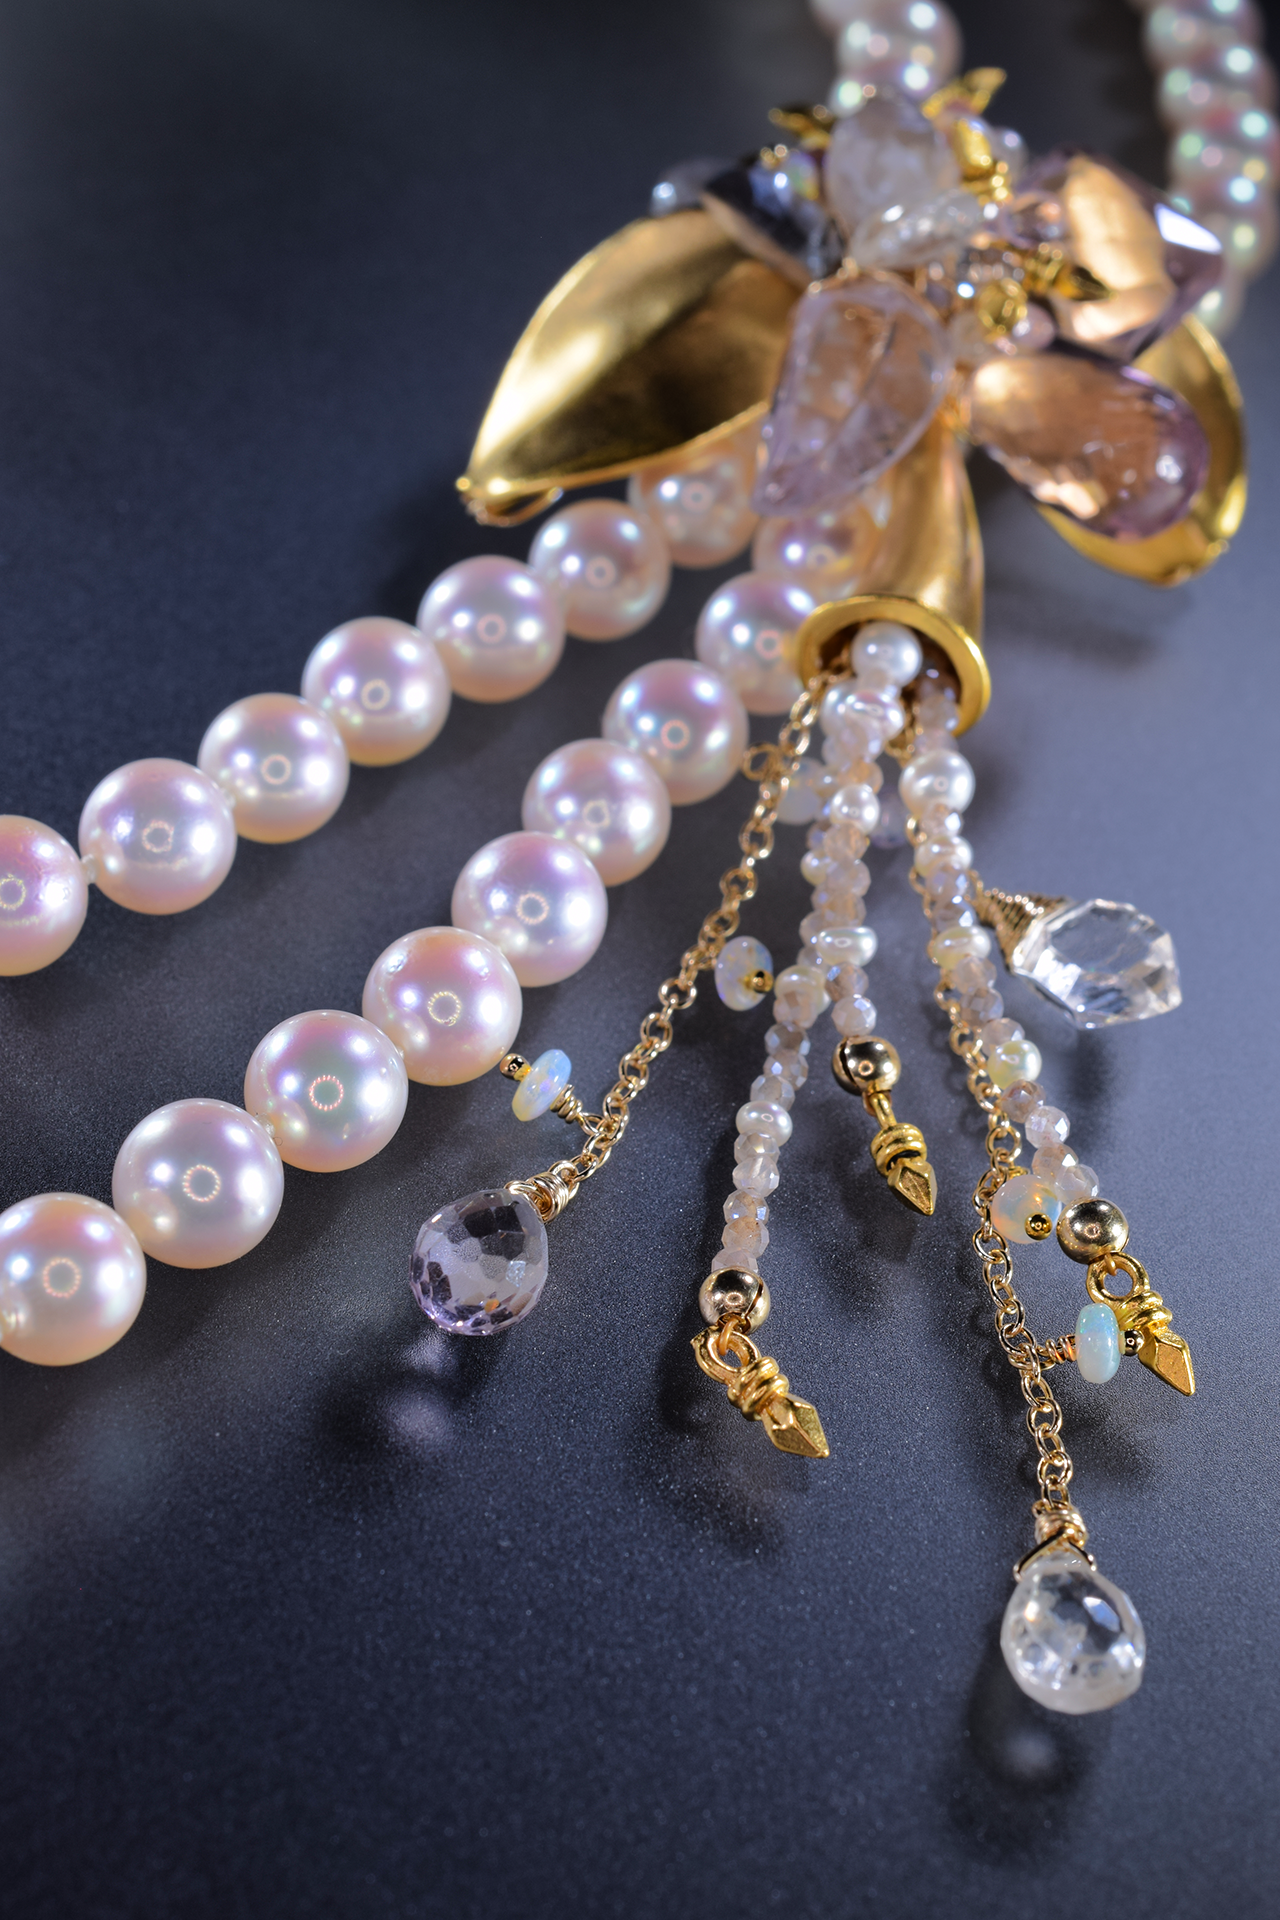 double strand pearl necklace with gemstone accents